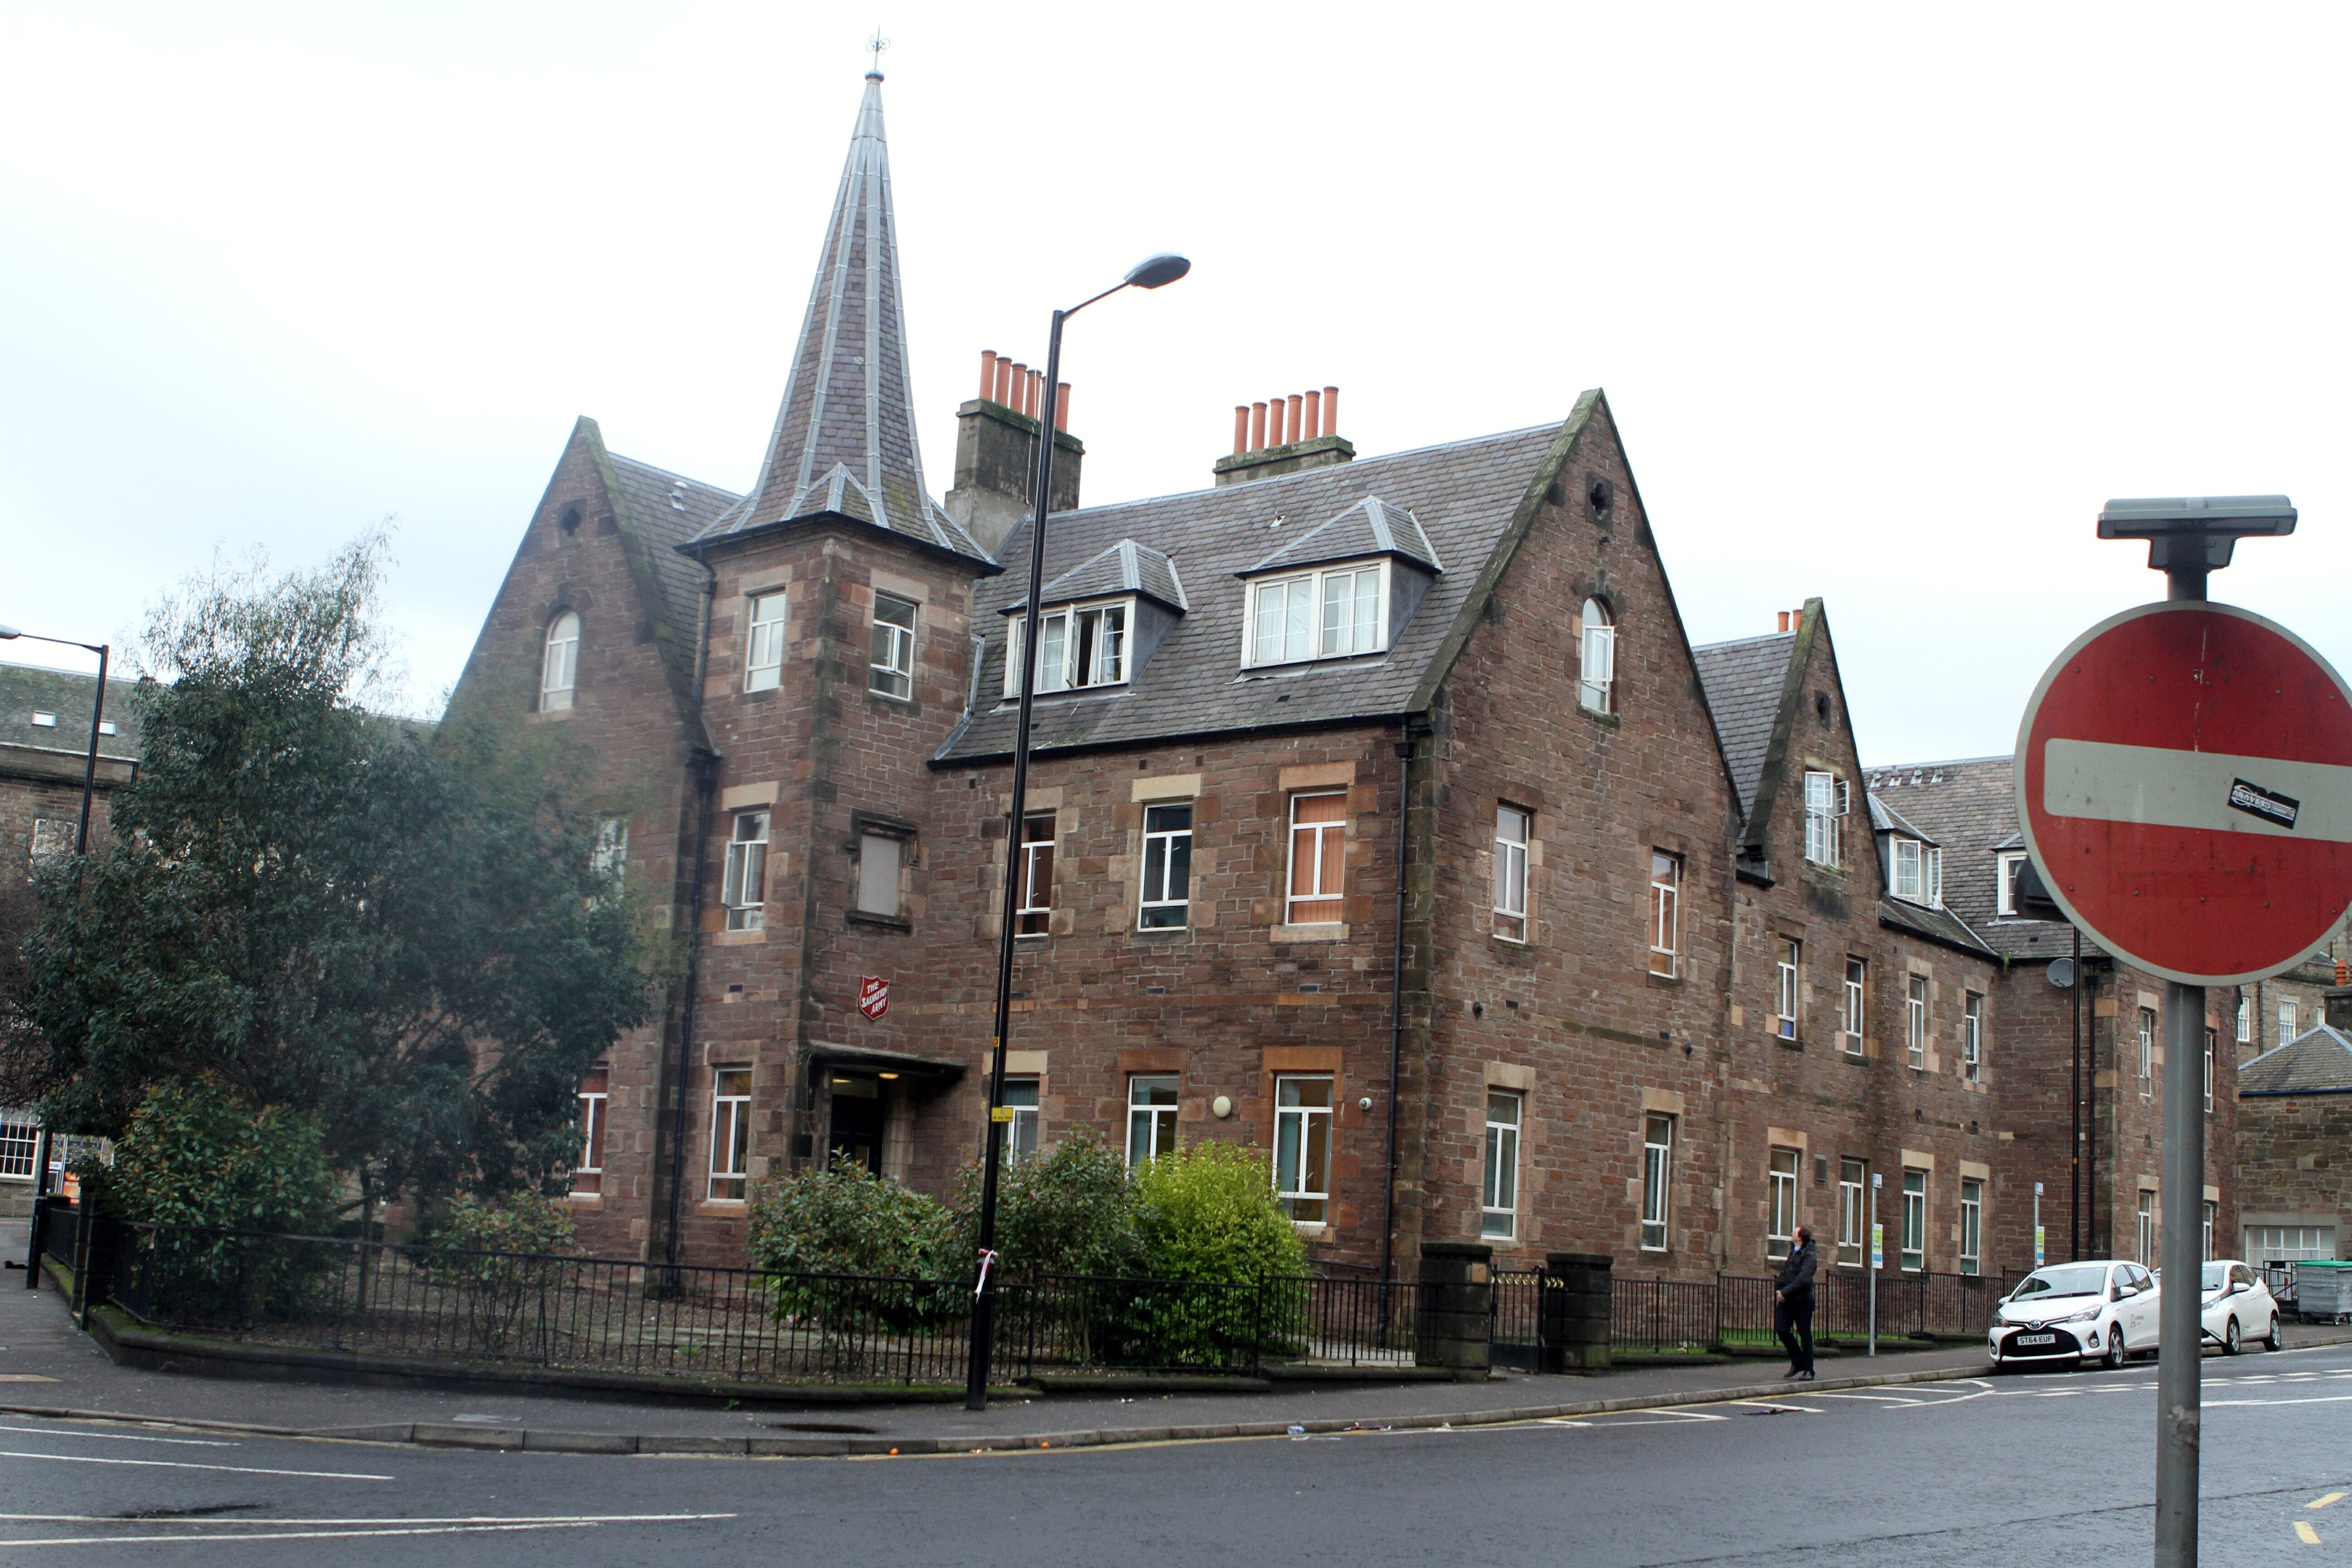 The Salvation Army Hostel on Ward Road